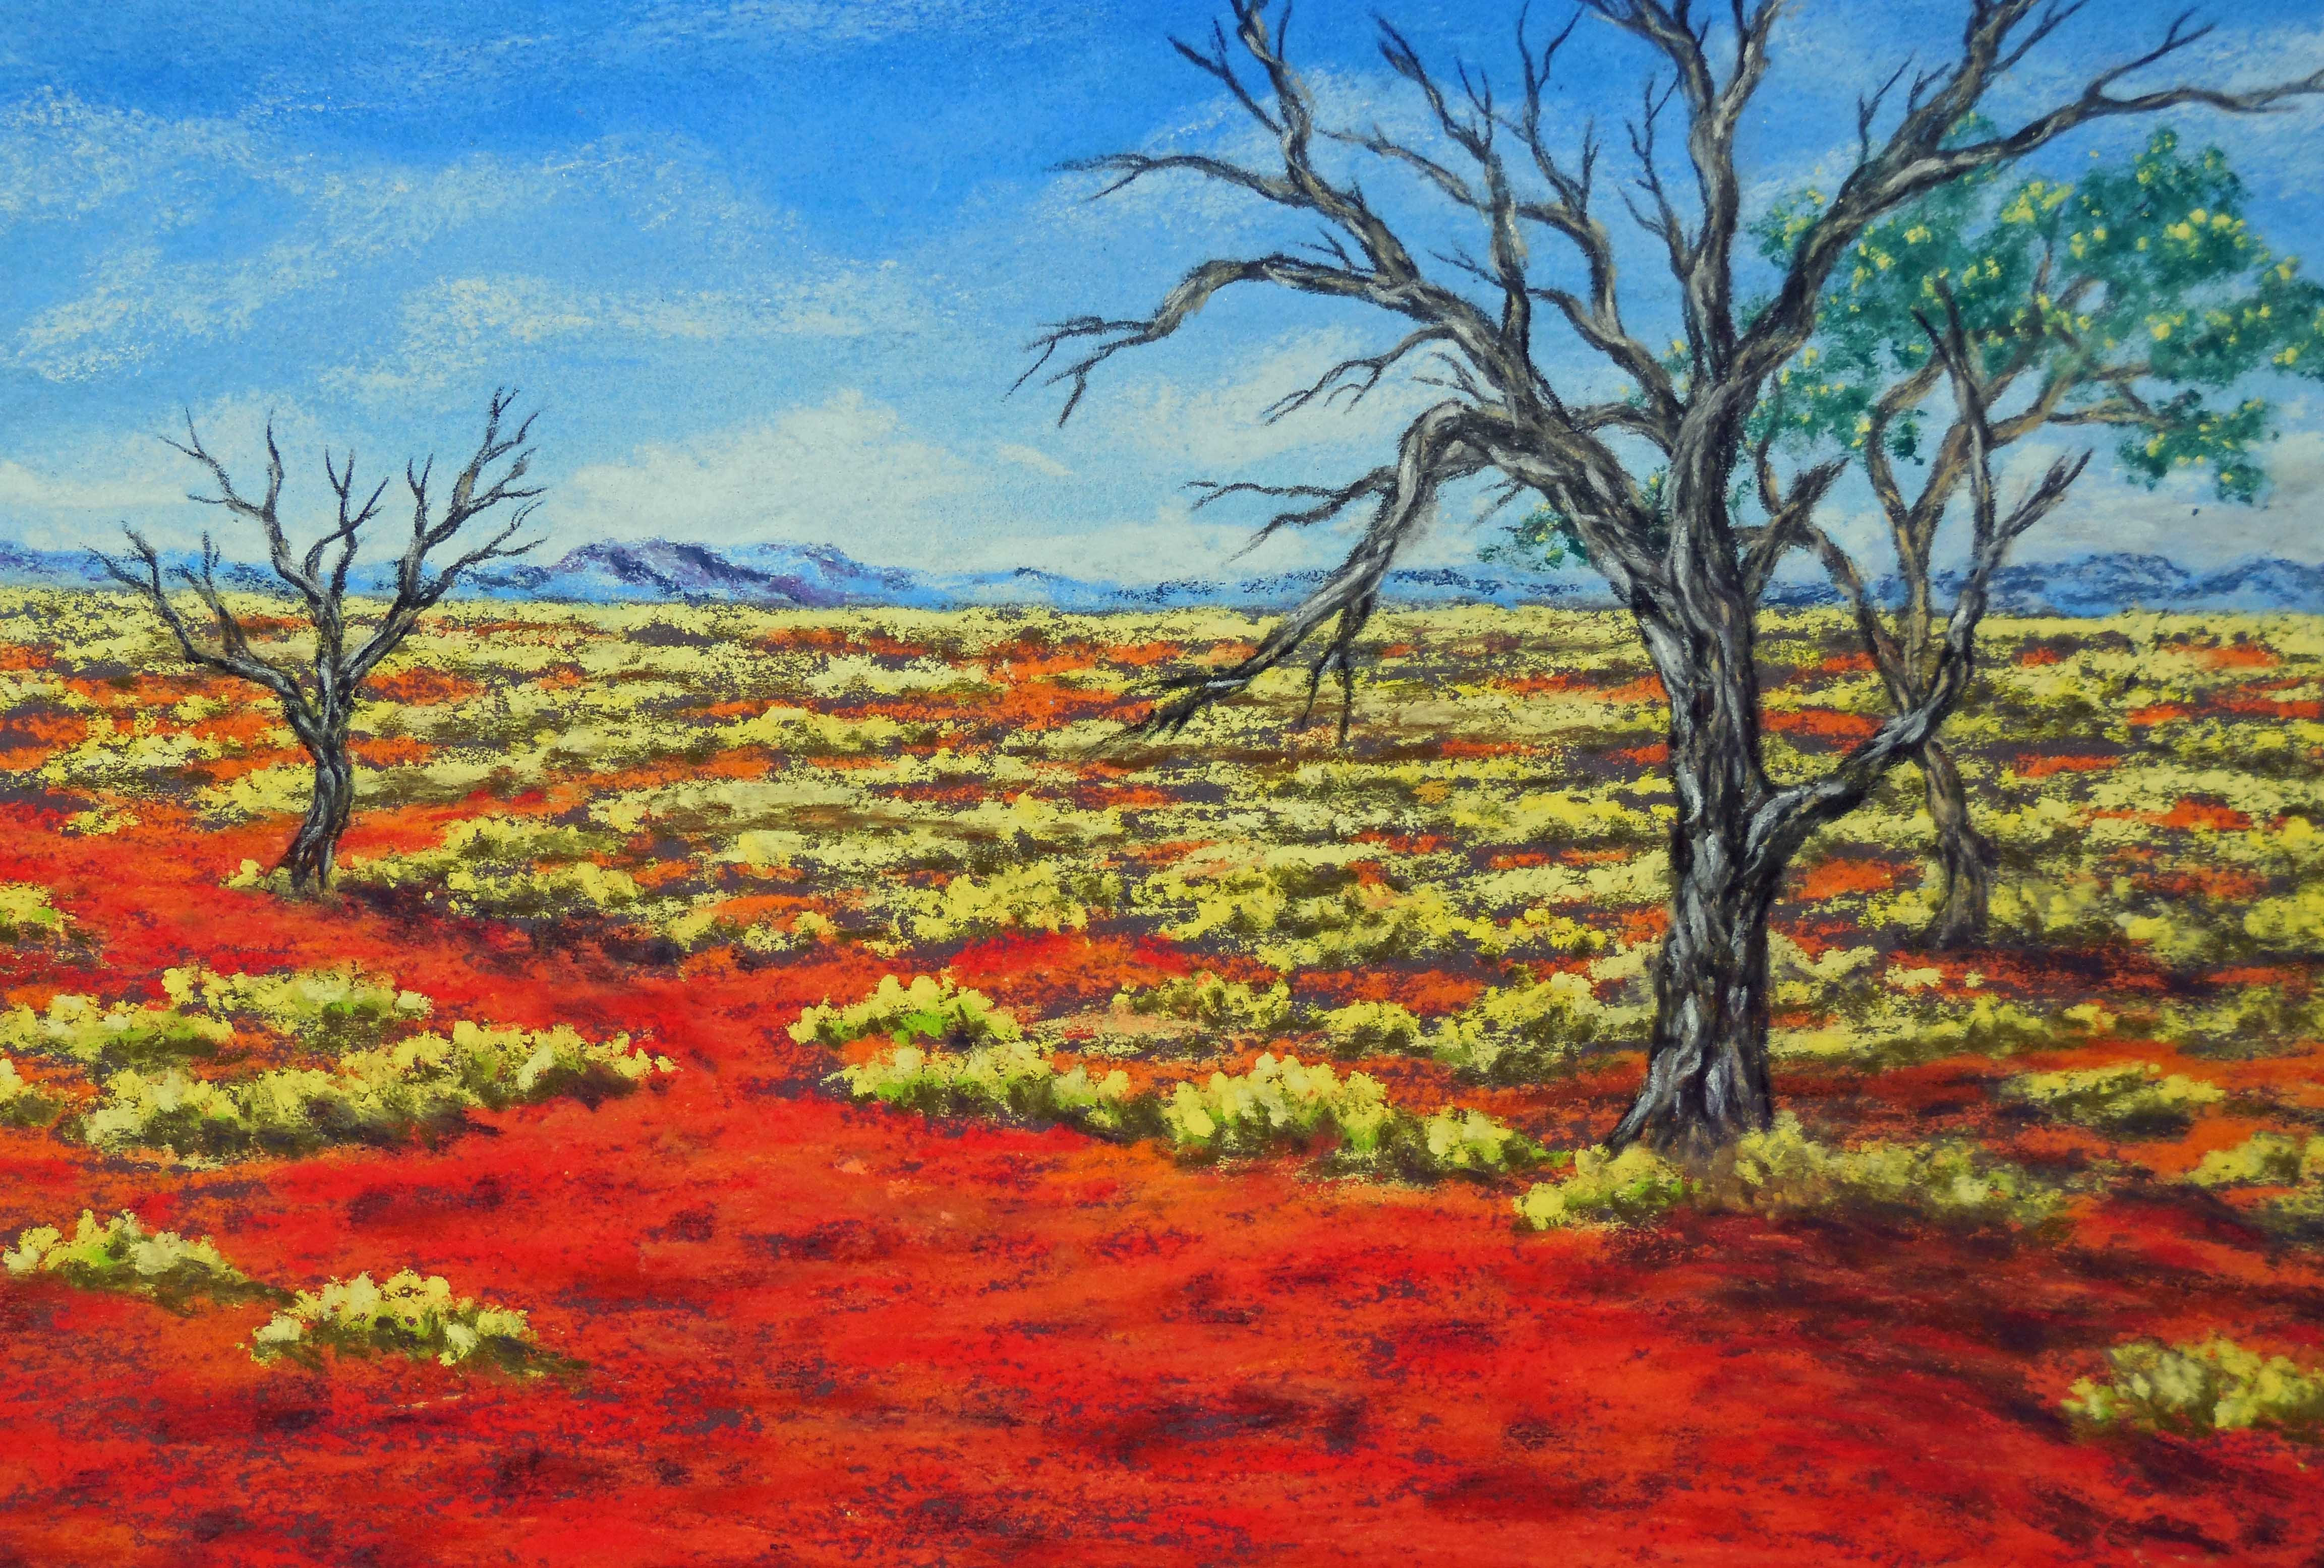 Australian outback paintings 1 tracts4free for Australian mural artists